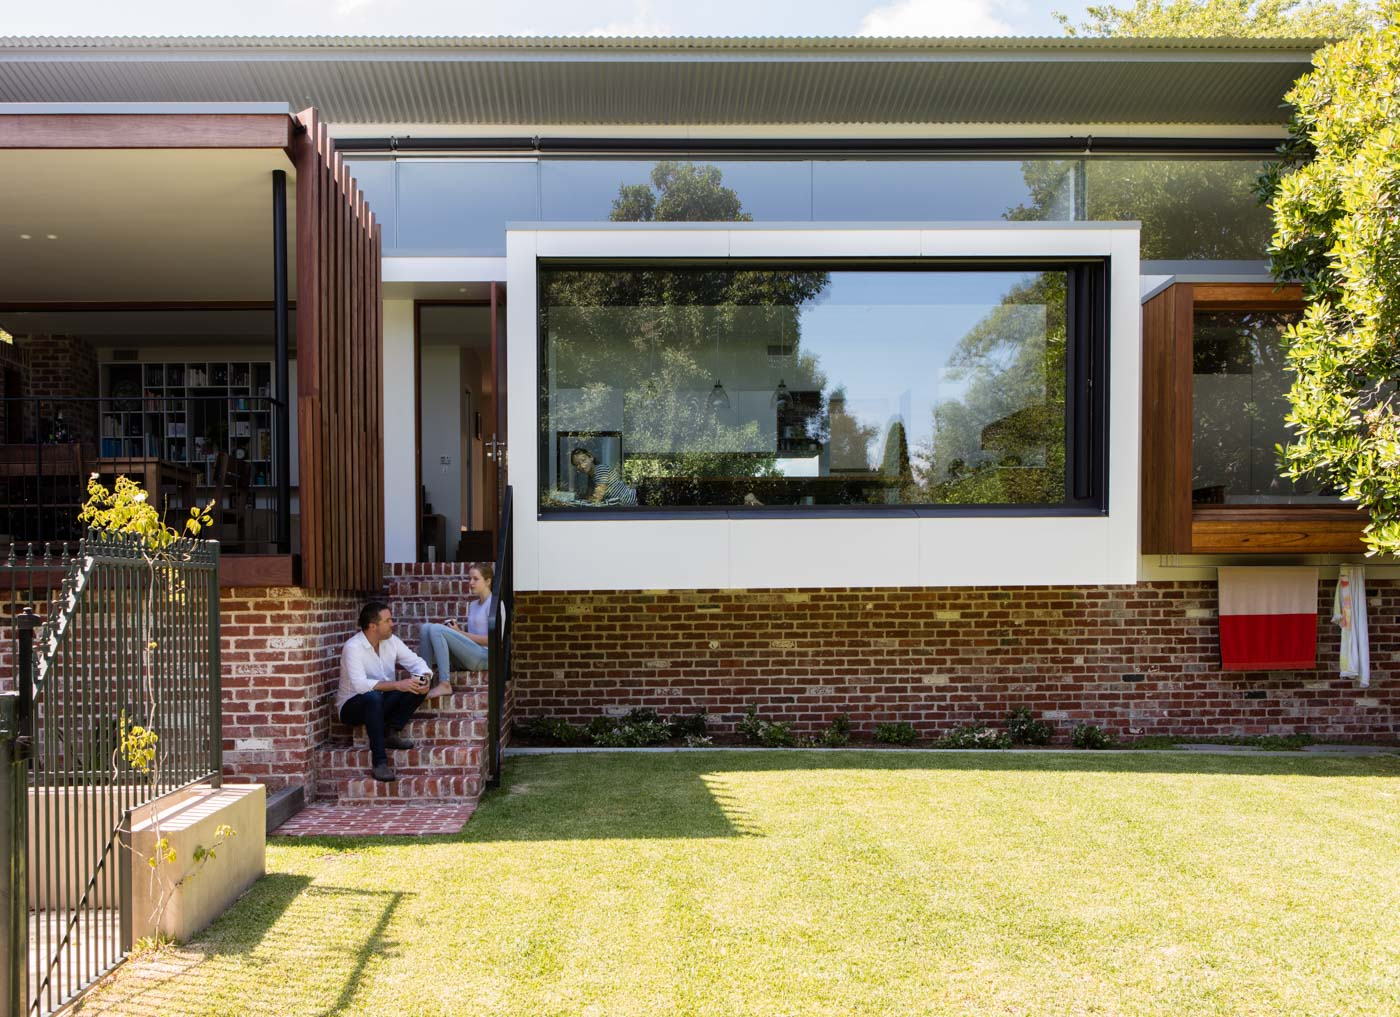 Roseville House by Sydney residential architects Sam Crawford Architects. This modern addition has large window pop outs protruding into the garden.